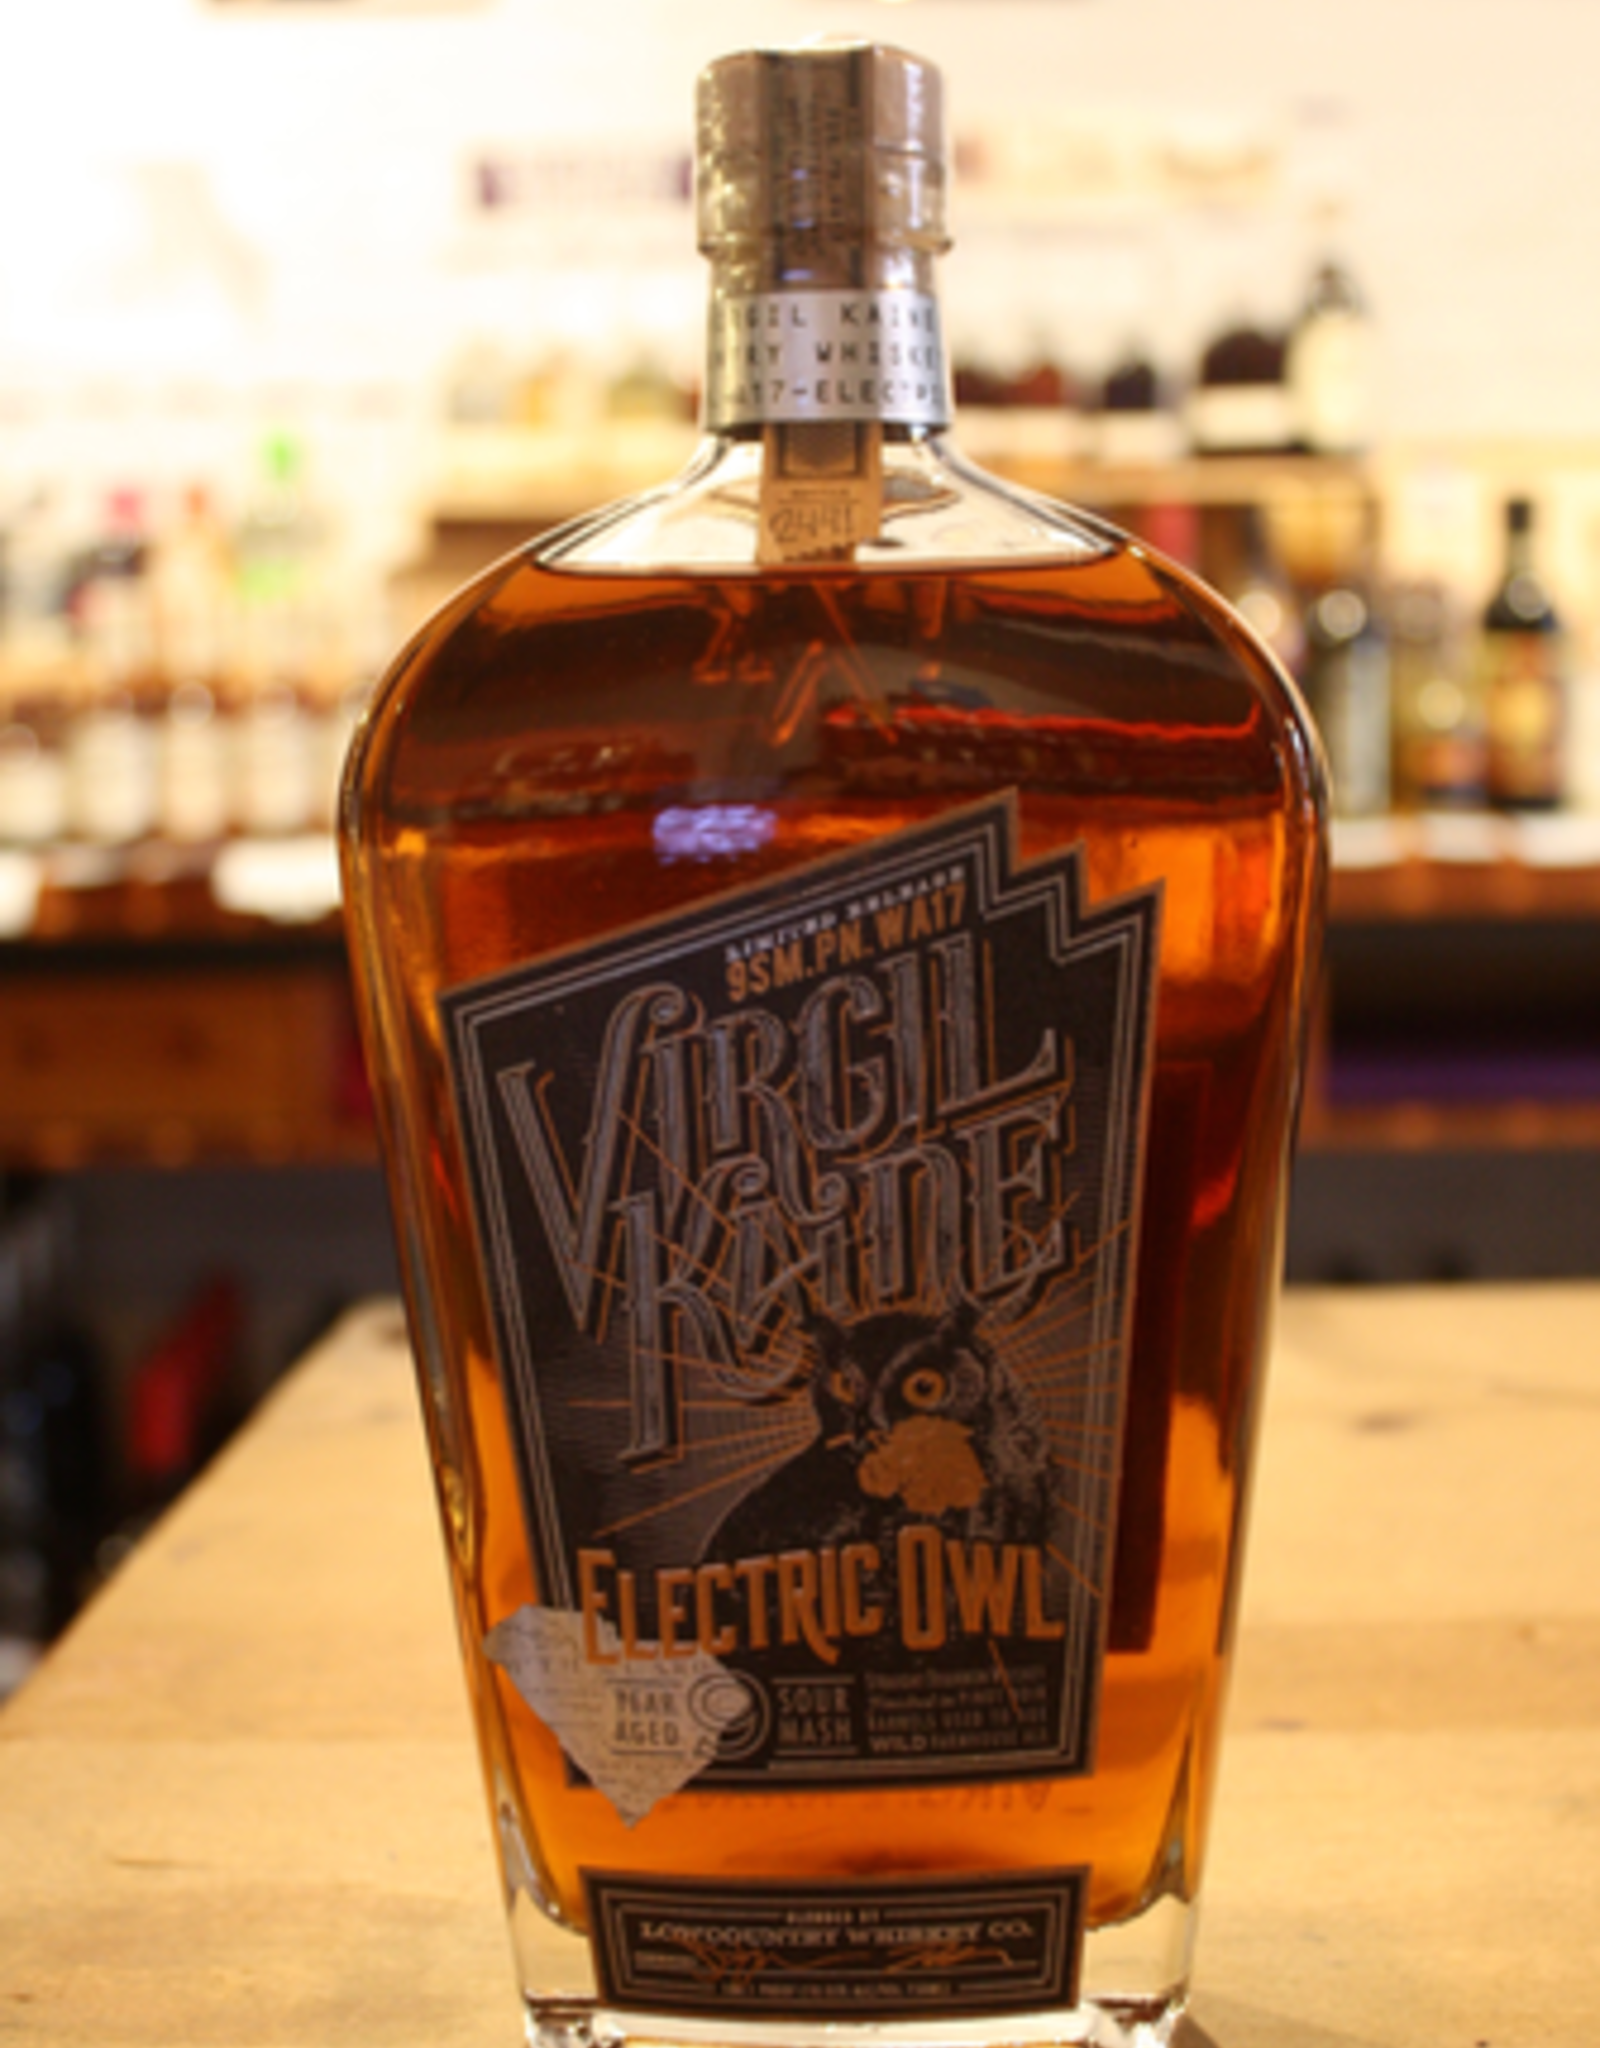 Virgil Kaine Electric Owl Straight Bourbon Whiskey - South Carolina (750ml)